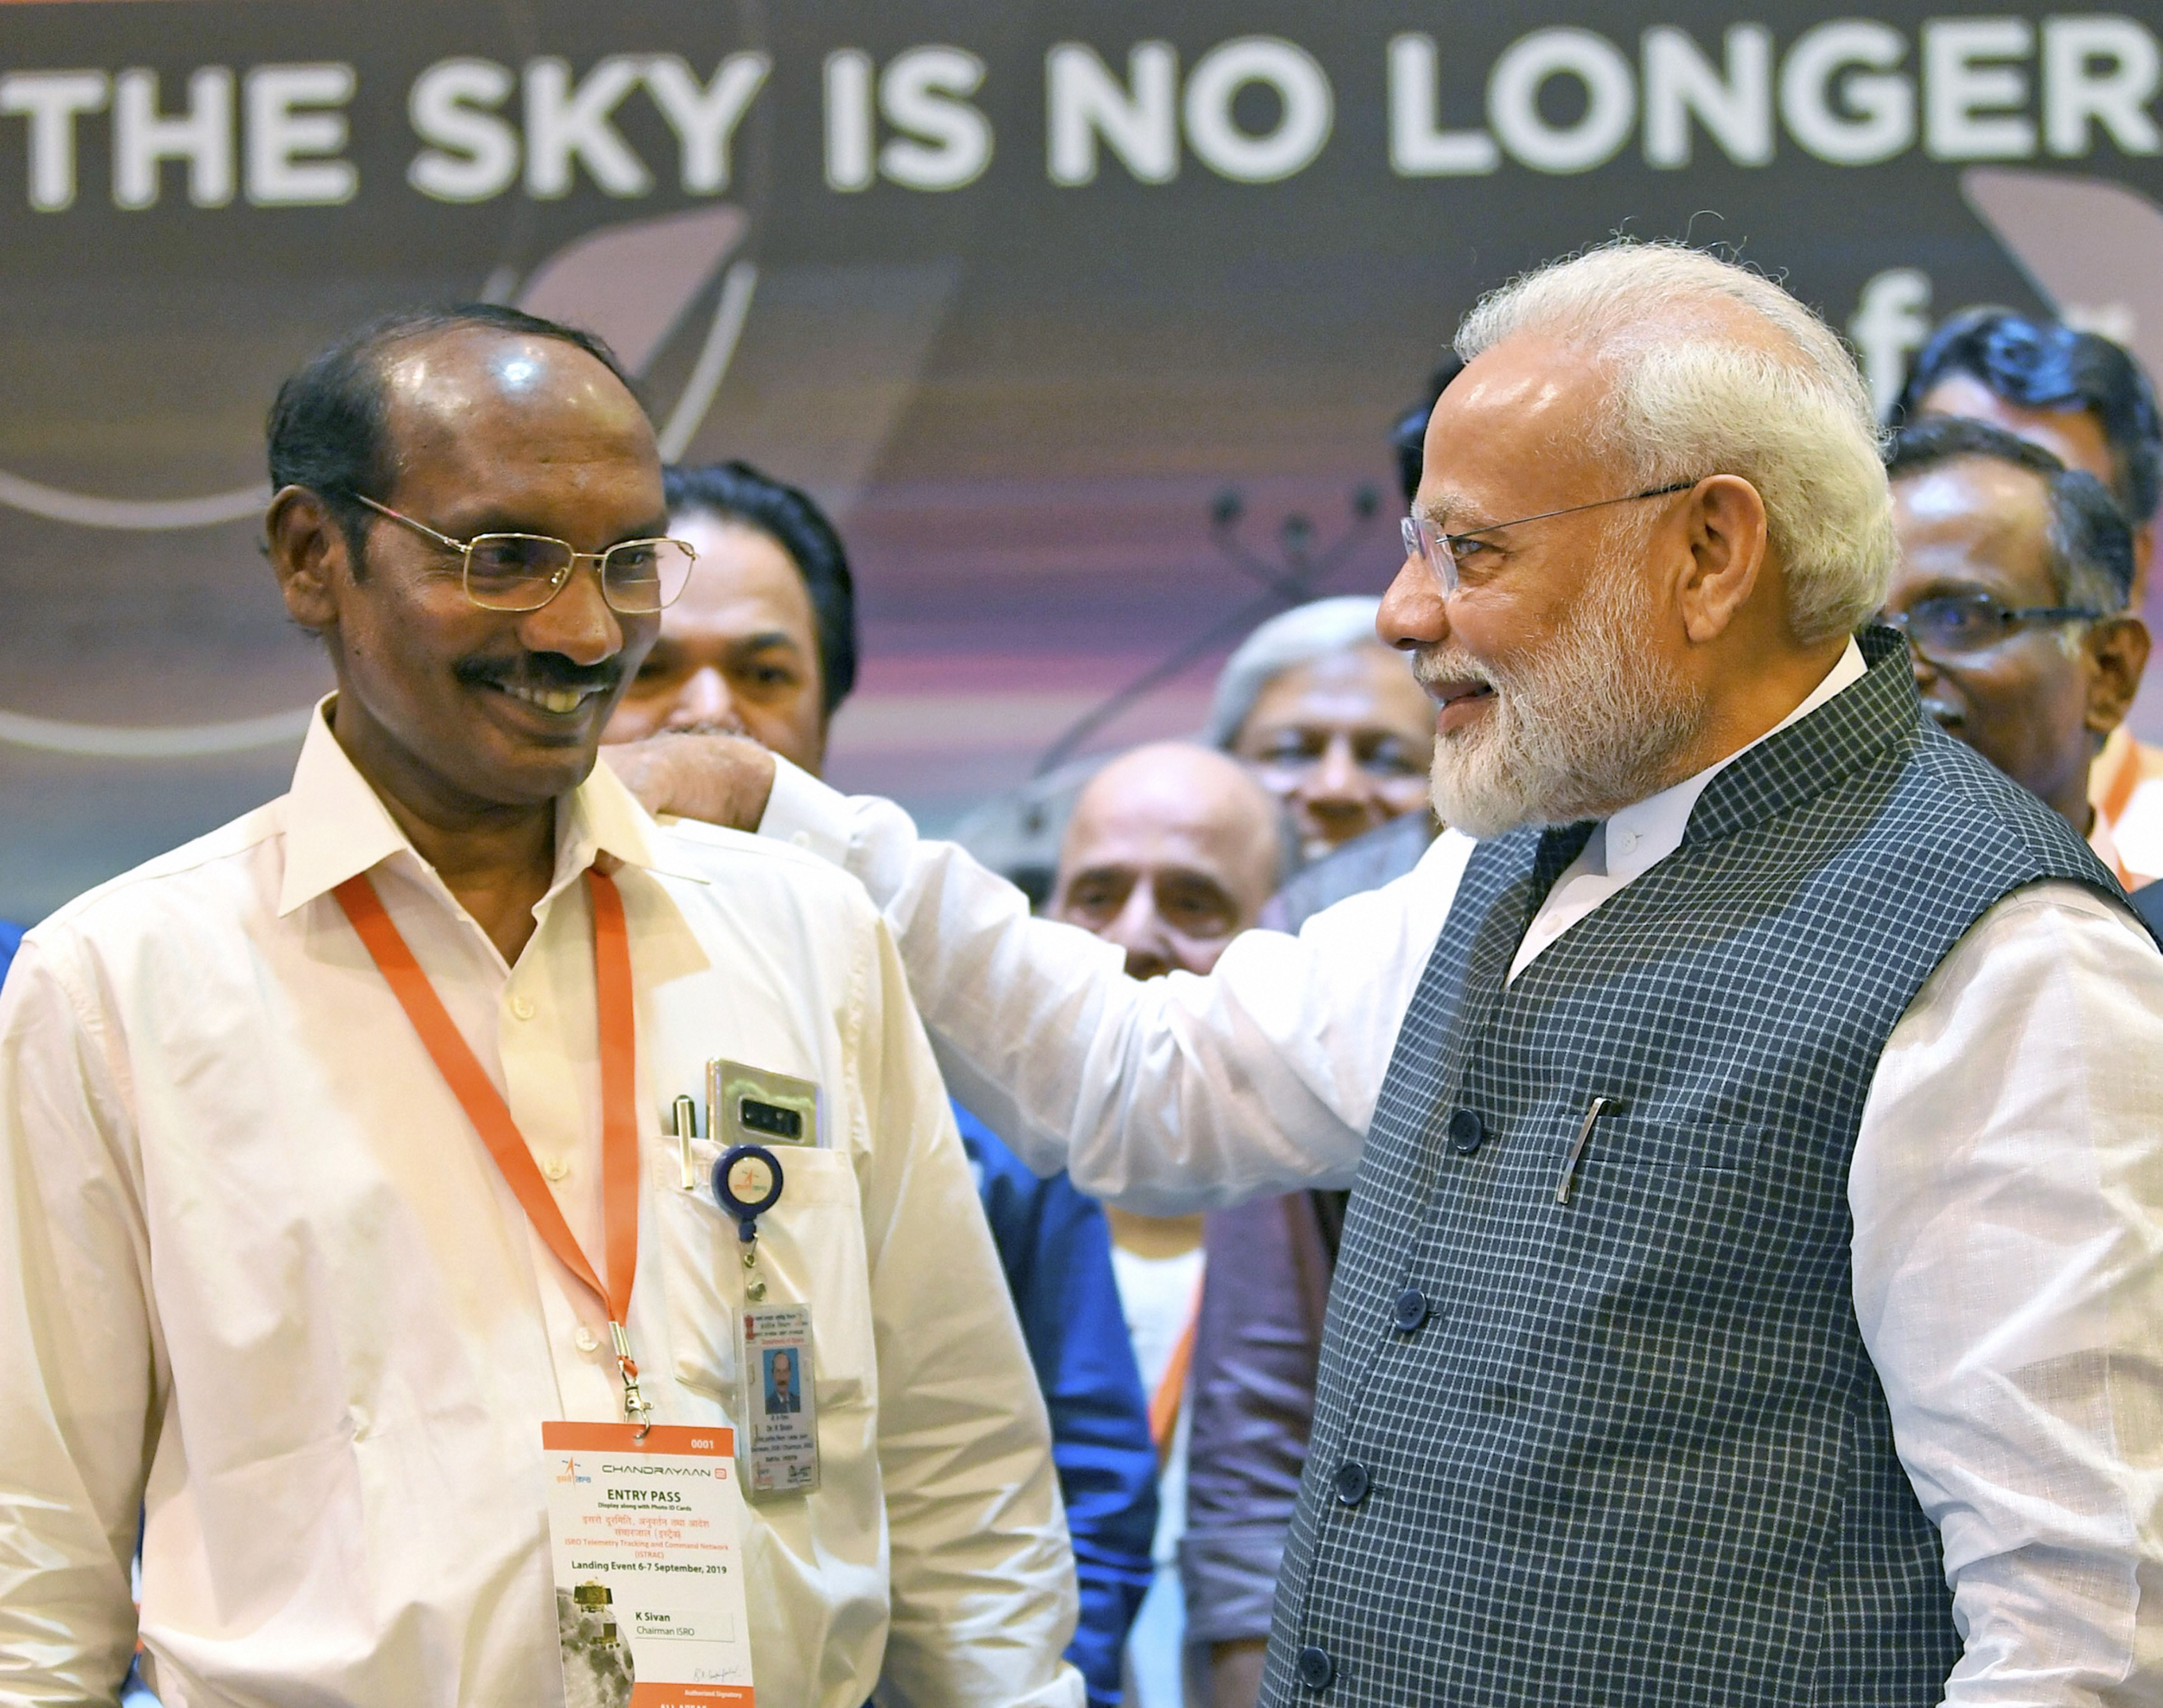 Prime Minister Narendra Modi pats Isro chairman K. Sivan who got emotional after the Vikram lander lost connection during soft landing of Chandrayaan 2 on the lunar surface.